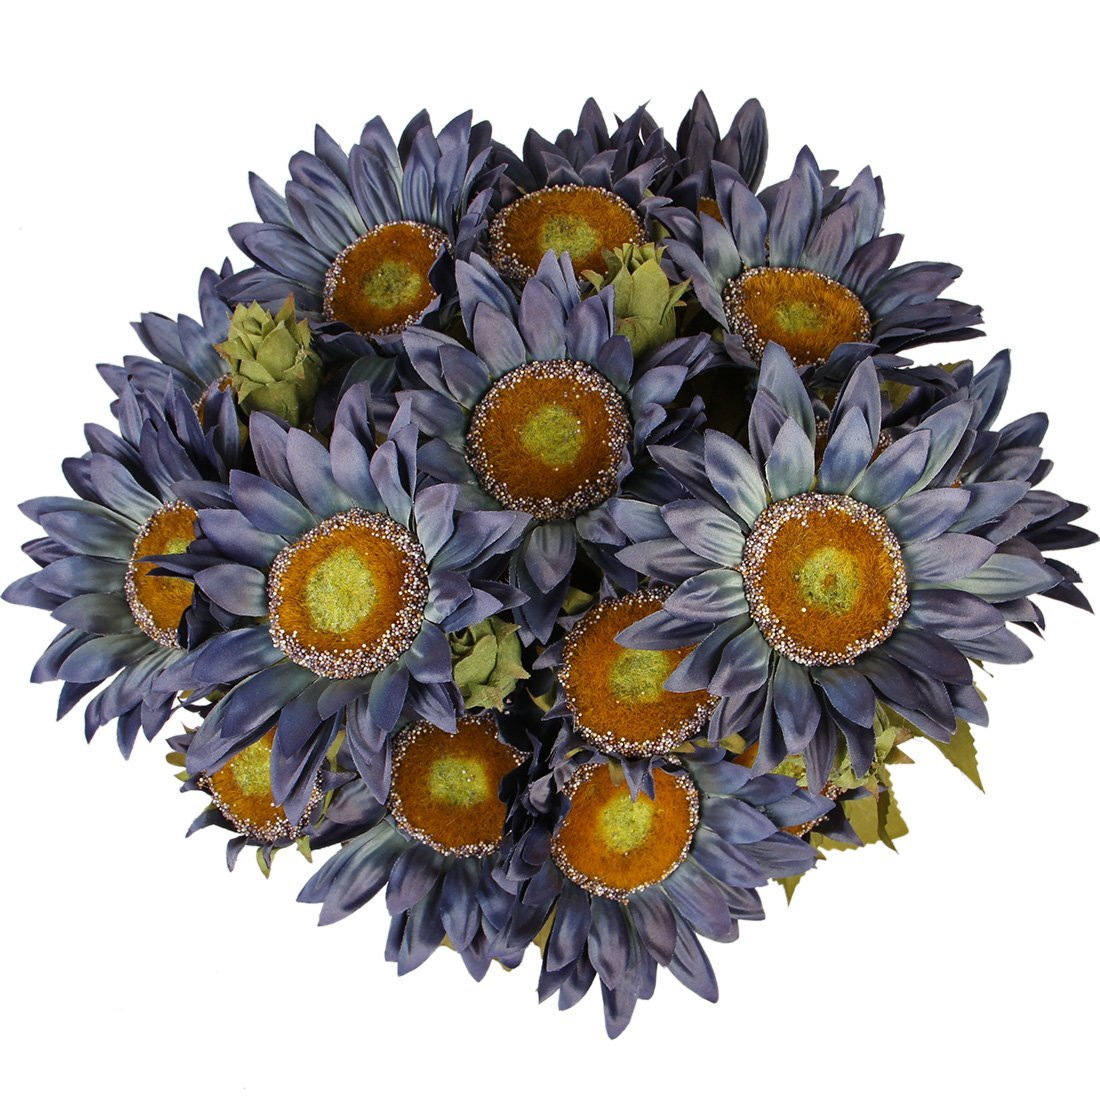 Cheap silk sunflowers bulk find silk sunflowers bulk deals on line luyue 13 head artifical silk sunflowers bouquet oil painting style decorative flowers oil blue izmirmasajfo